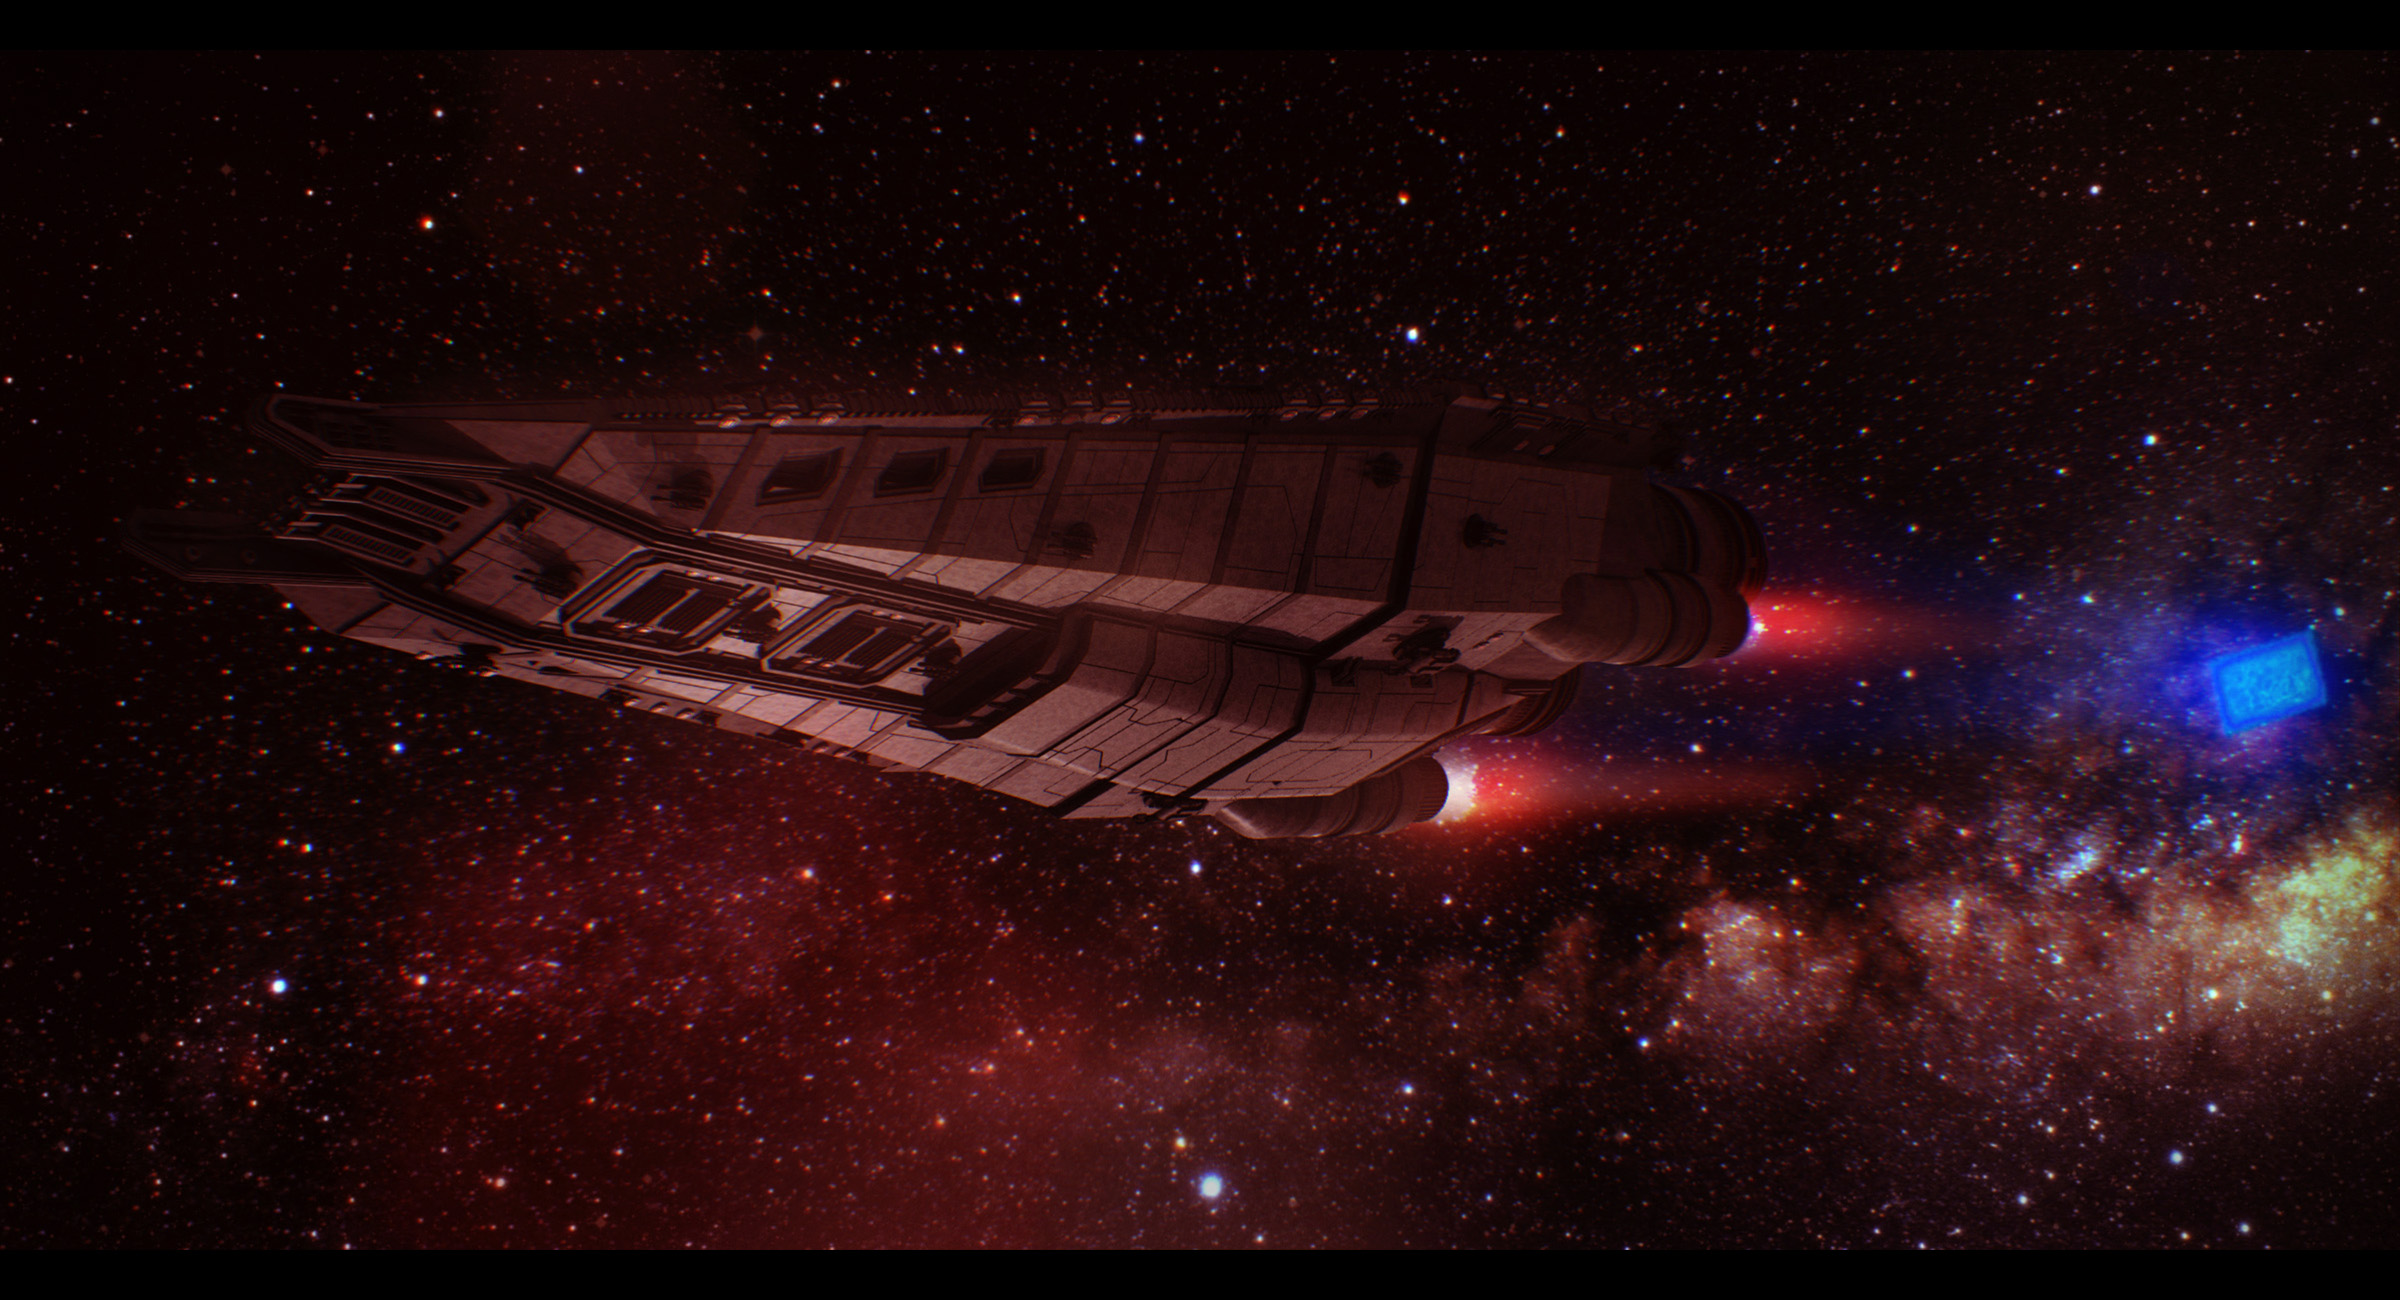 Terran Alliance Warship: Raptor's Wrath 5 by Dreamer-Out-There